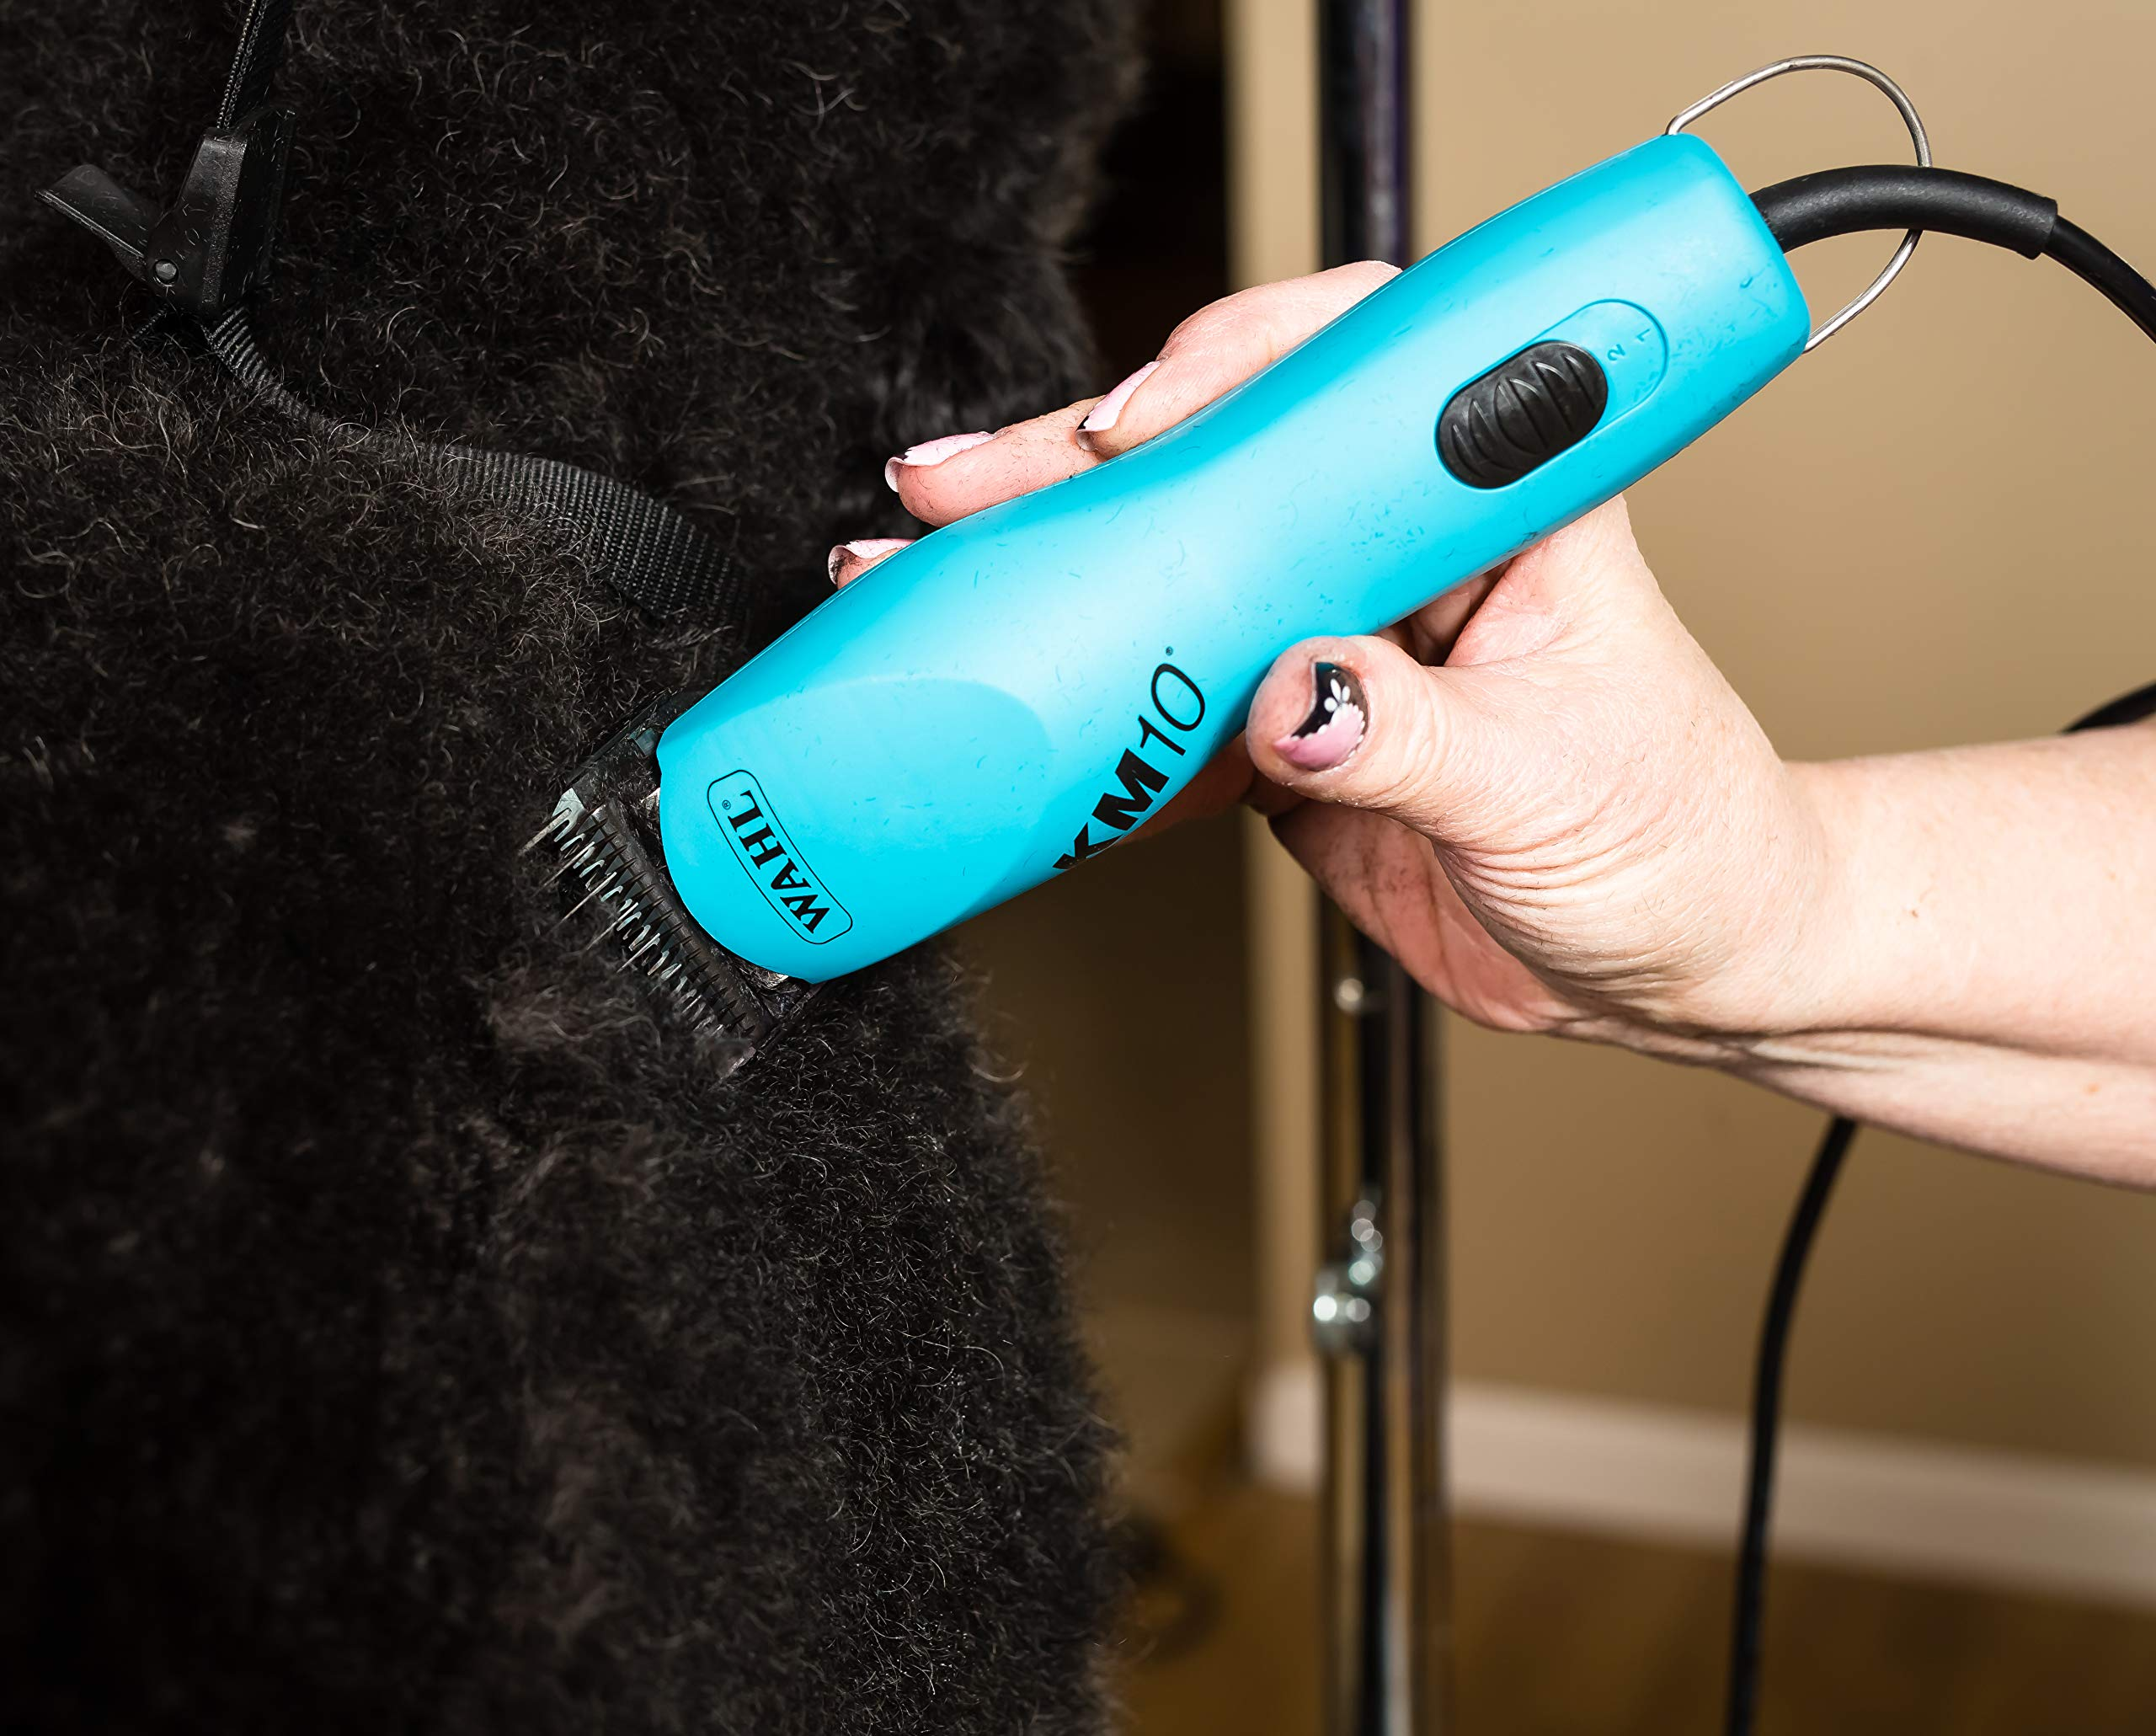 Wahl Professional Animal KM10 2-Speed Brushless Motor Pet Clipper Kit, Turquoise (#9791) by Wahl Professional Animal (Image #5)